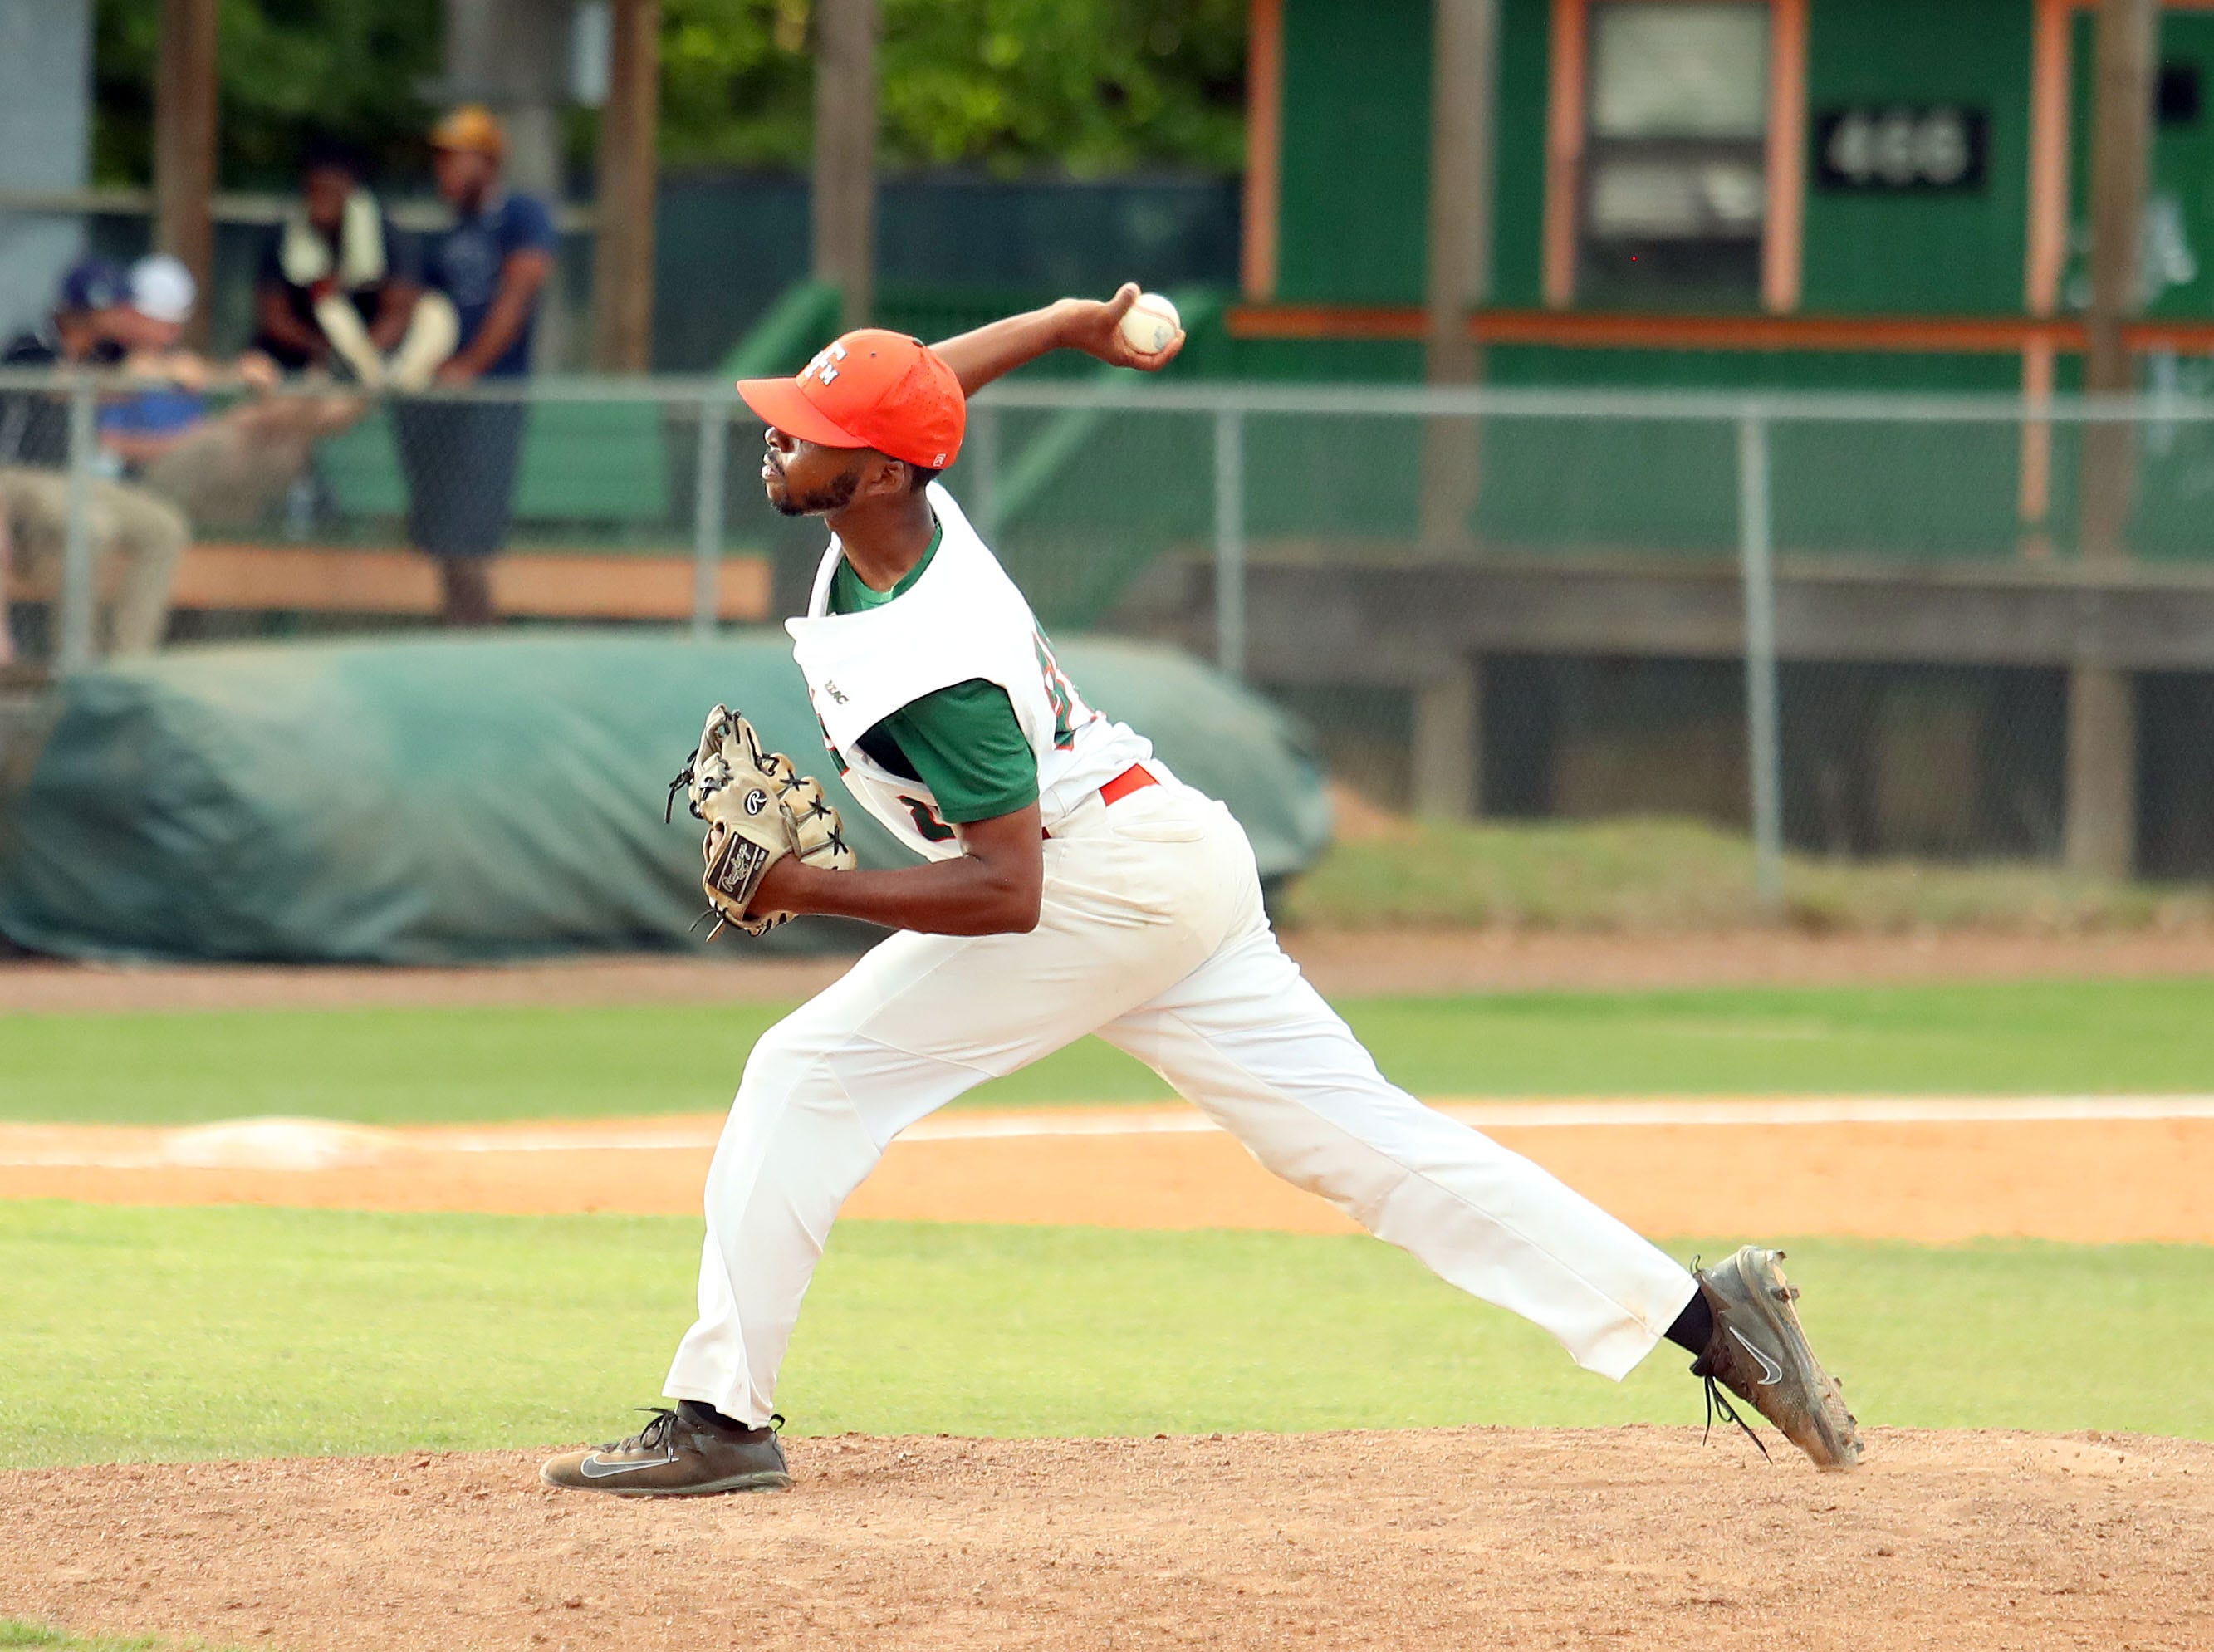 FAMU pitcher Jeremiah Mccullum earned a win in 1.2 innings of relief in Game 2 of a doubleheader versus B-CU on Saturday, April 13, 2019.